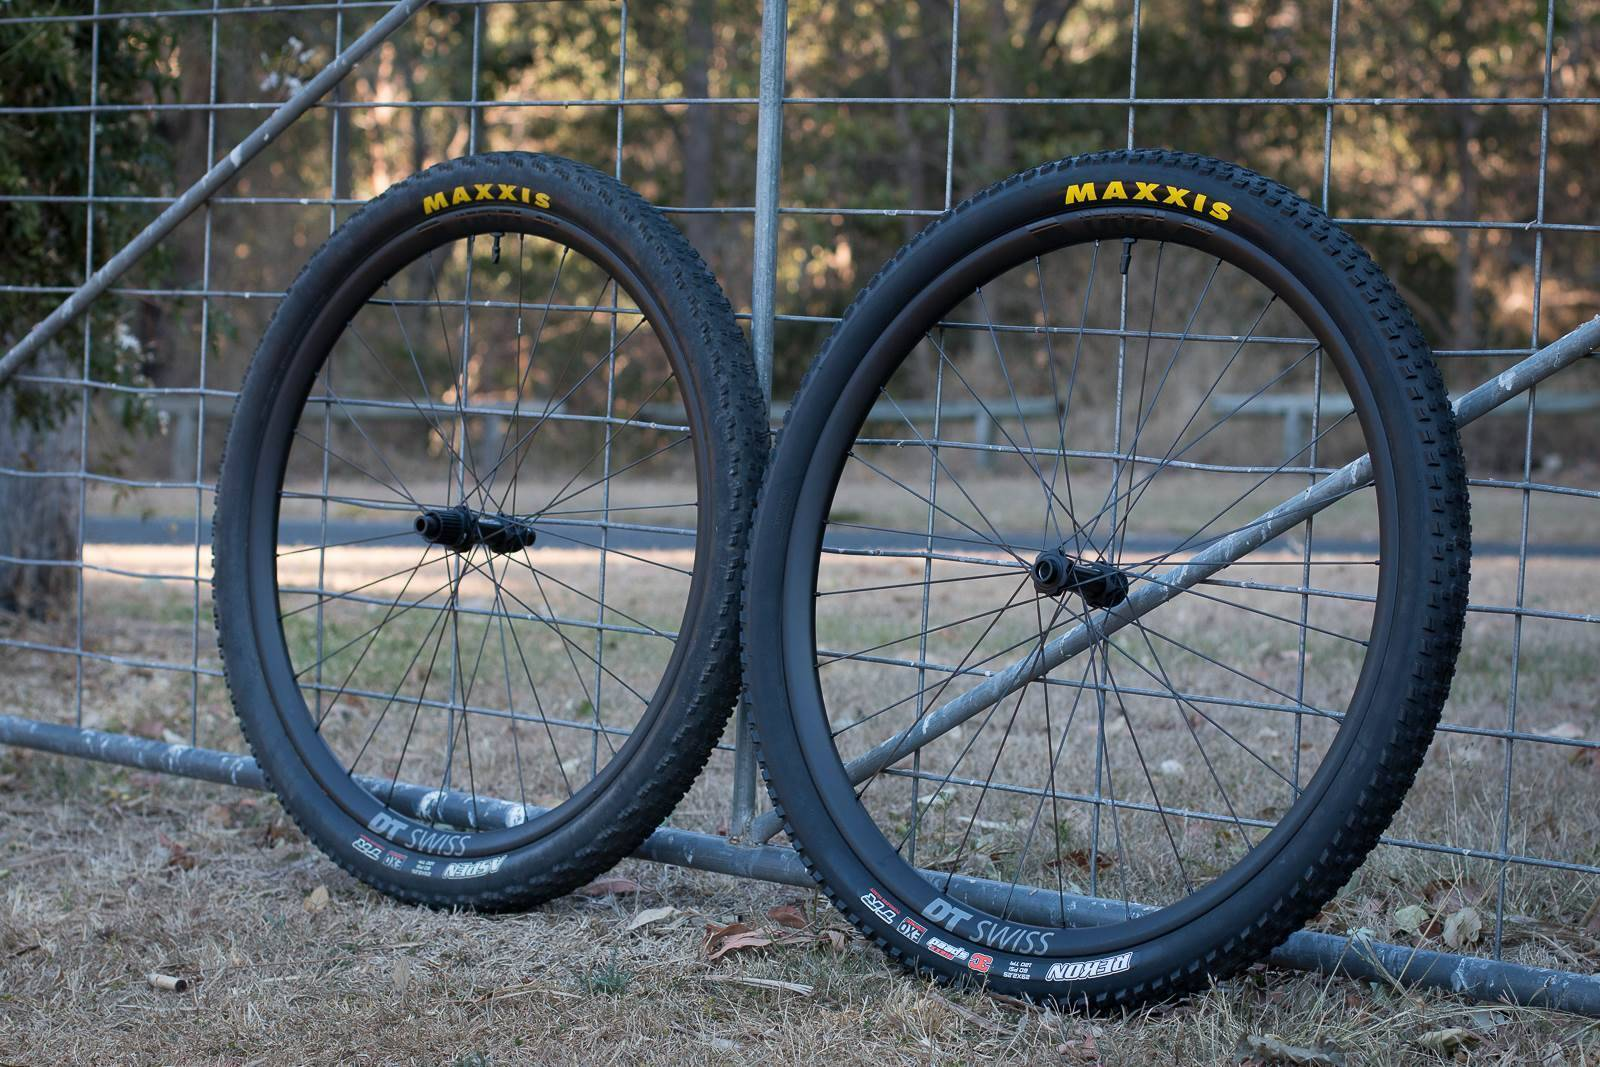 FIRST LOOK: DT Swiss XRC 1200 Spline carbon MTB wheels